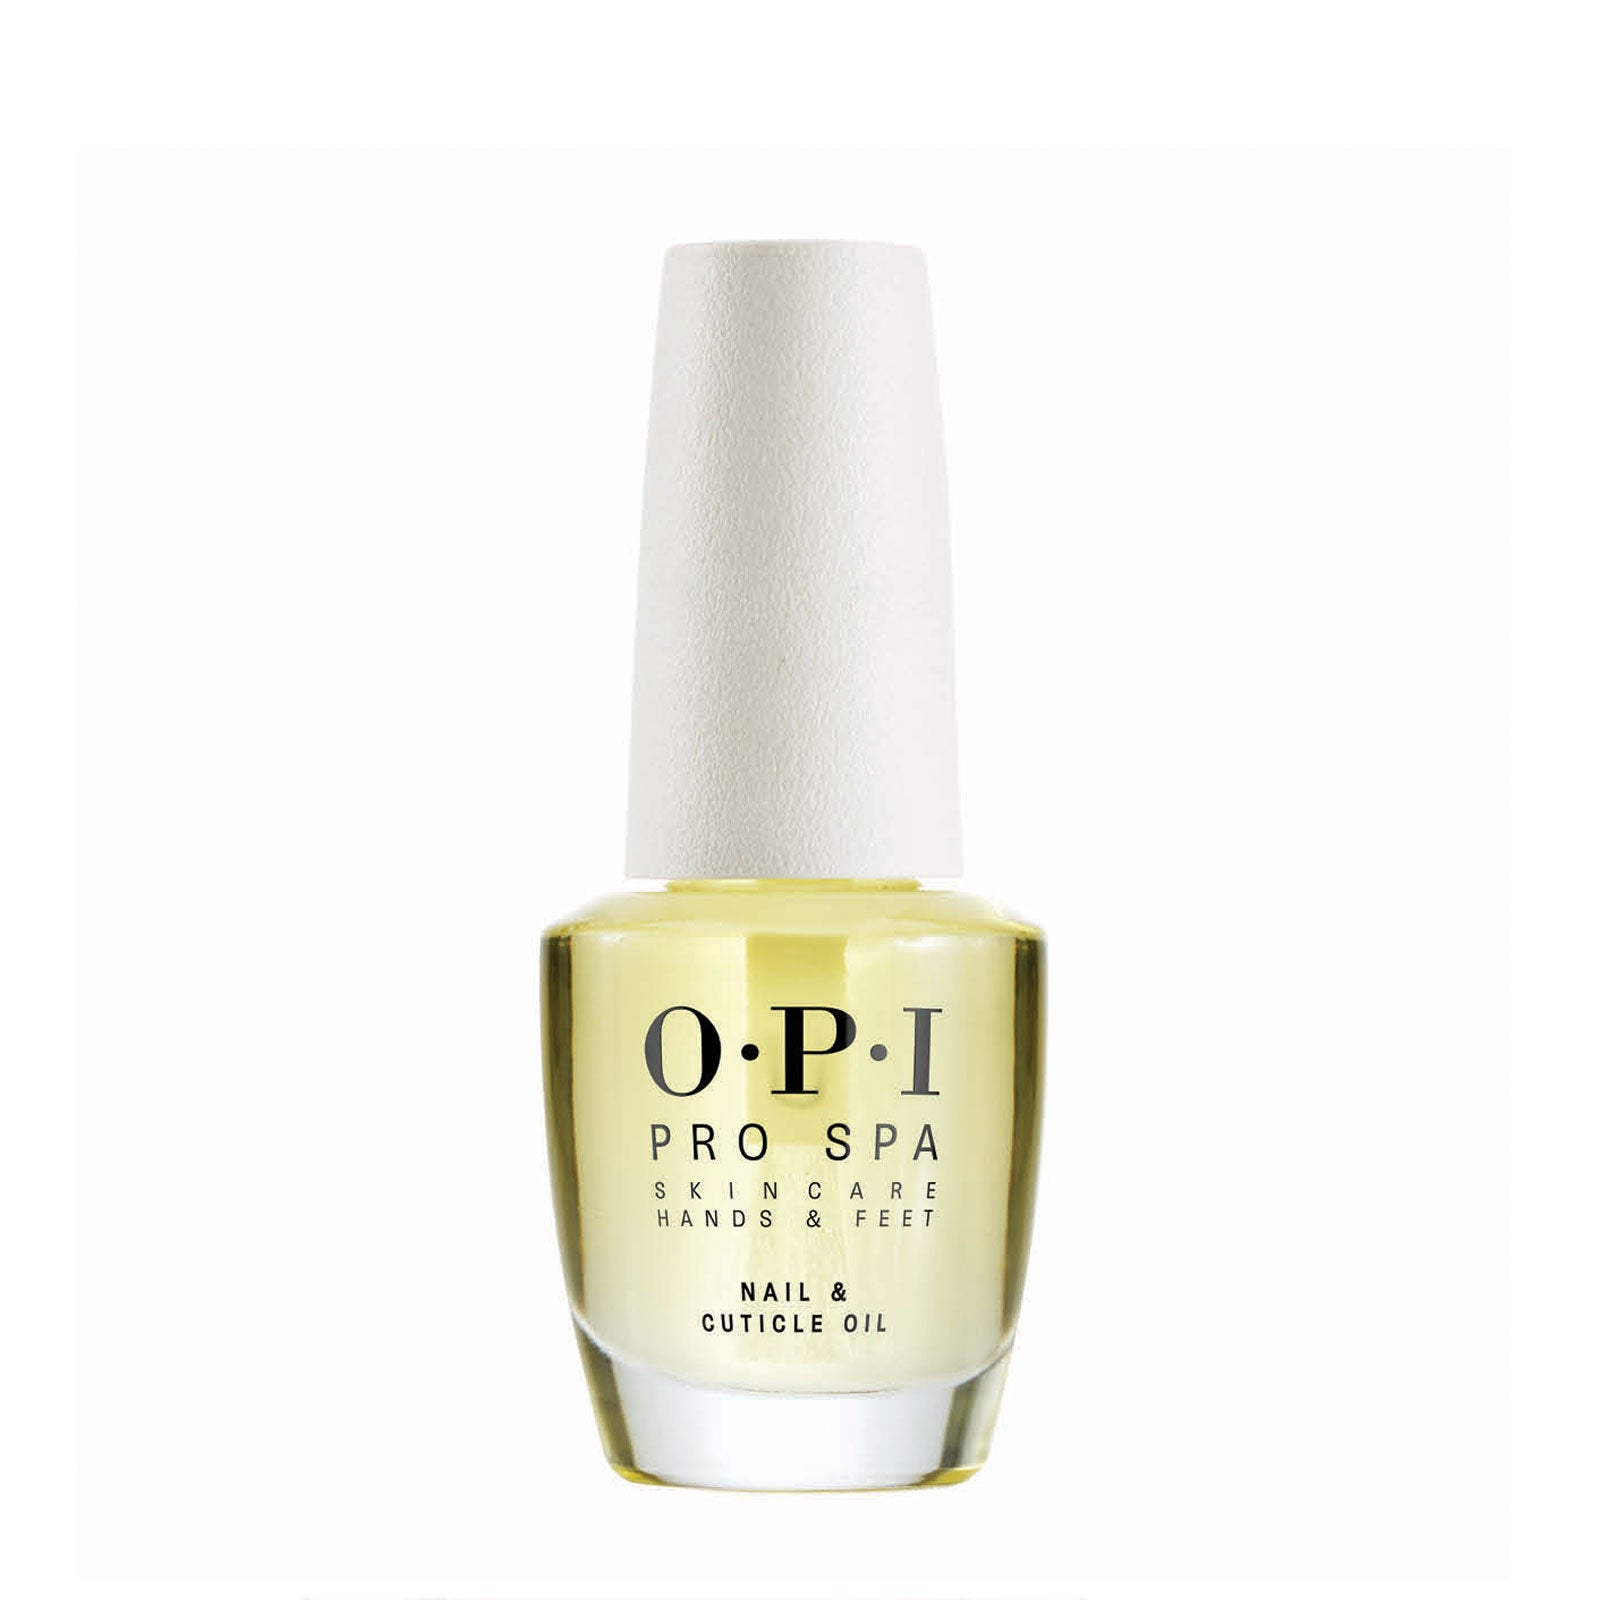 OPI ProSpa Nail & Cuticle Oil 8.6ml